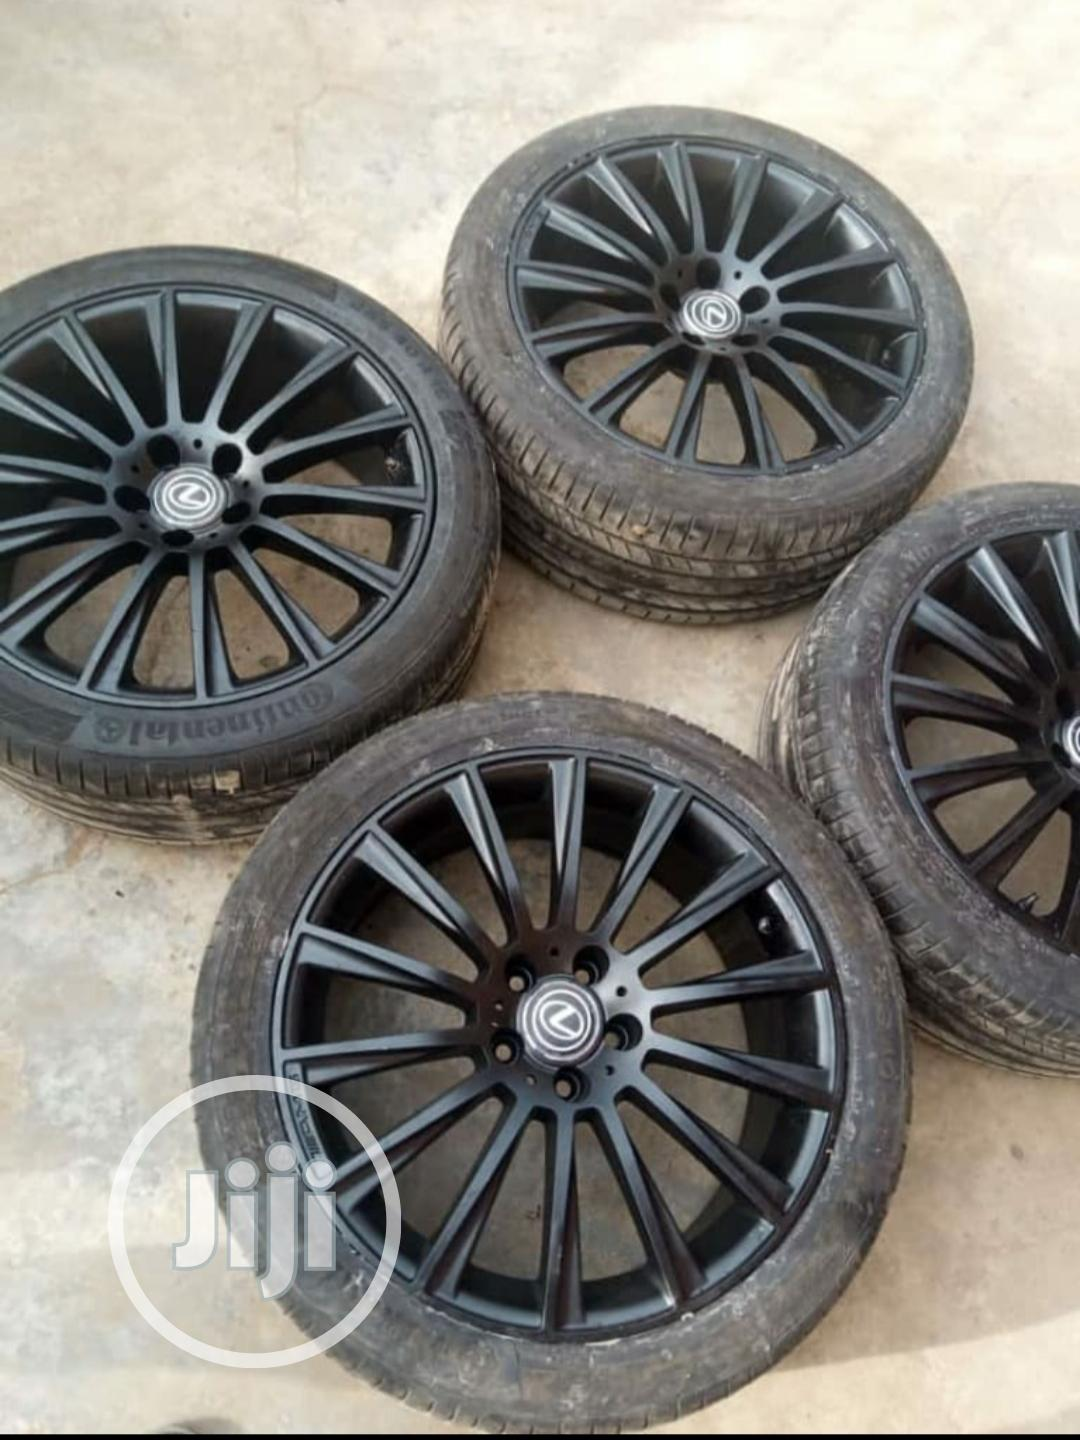 Available On 19 And 20 Rim For Toyota,Lexus And Mercedes Benz .